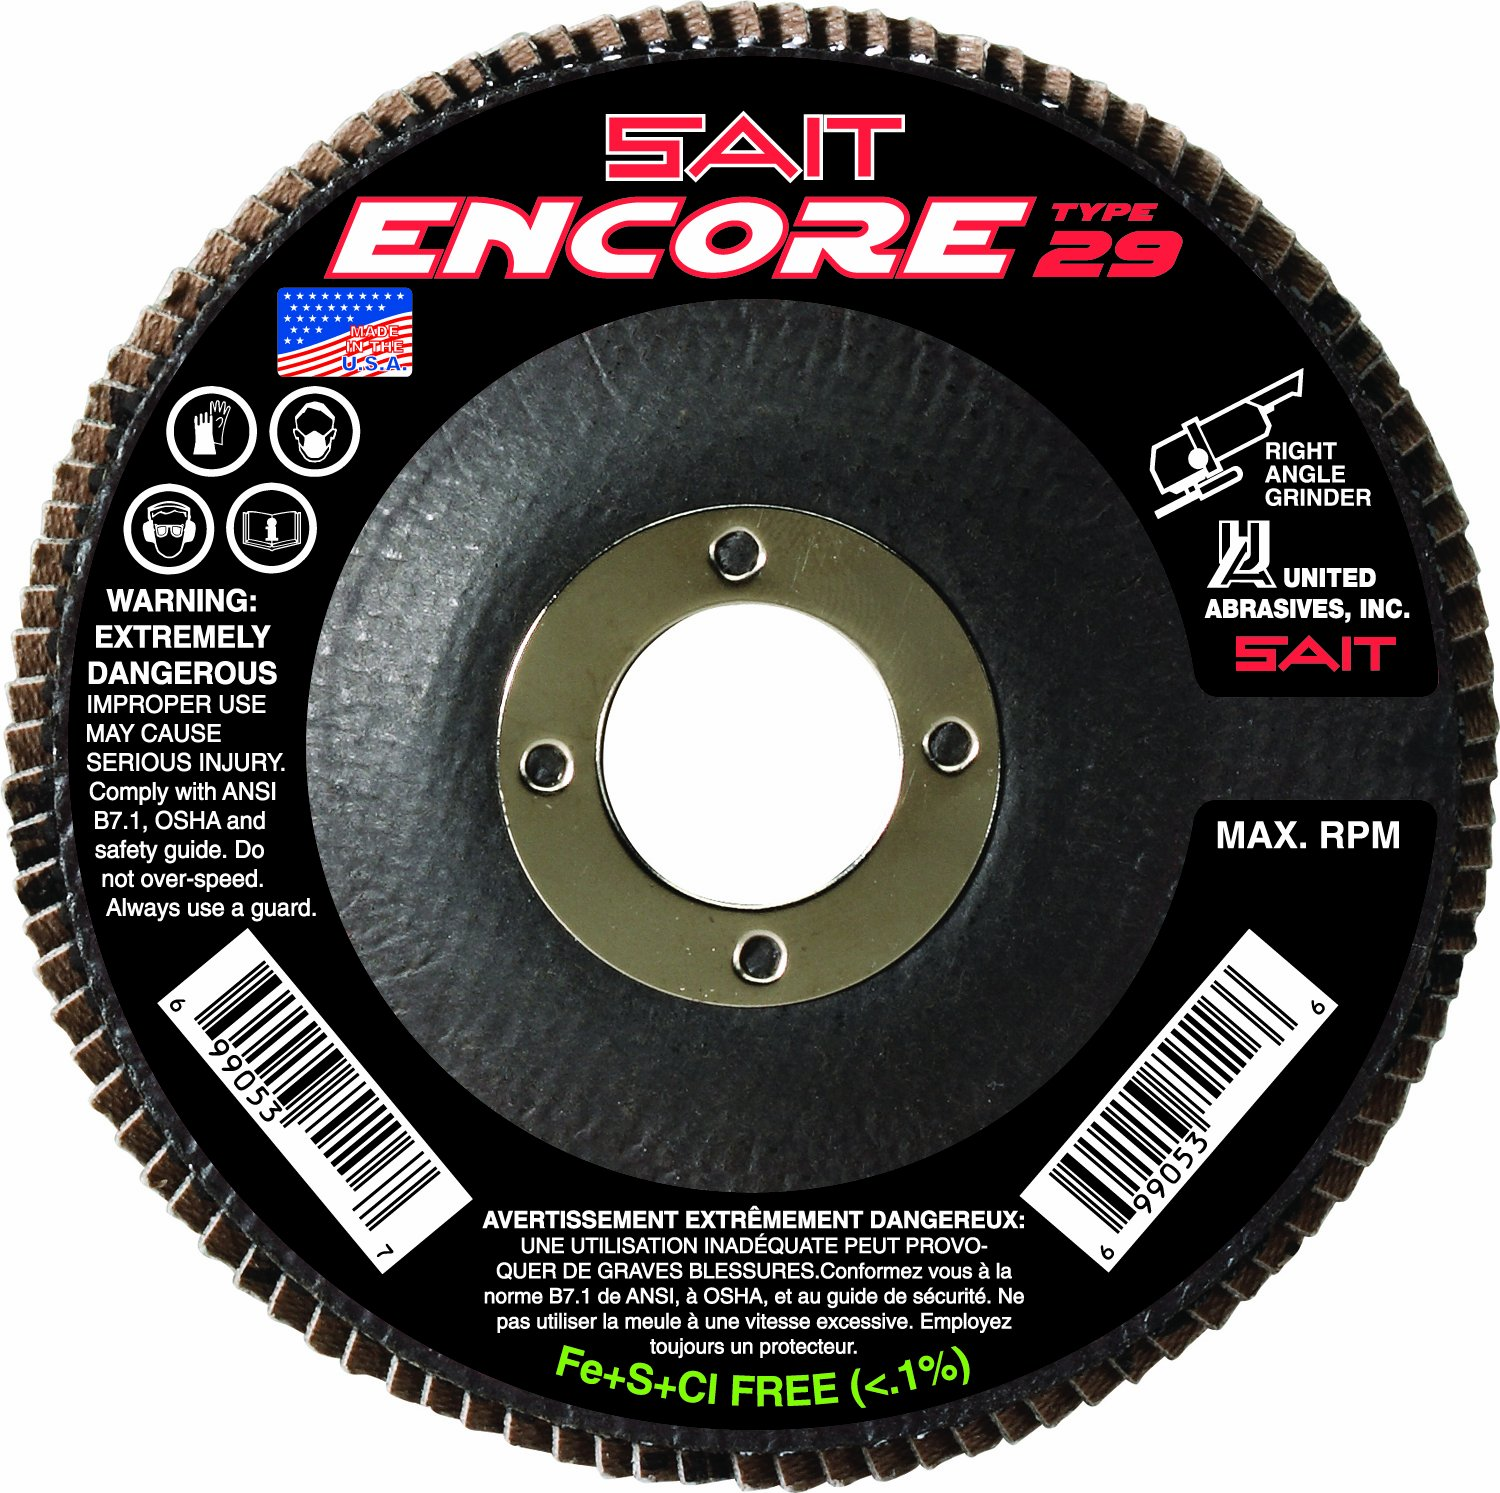 United Abrasives- SAIT 79105 Encore Type 29 Flap Disc, 4-1/2 X 7/8 Z 36X, 10 Pack